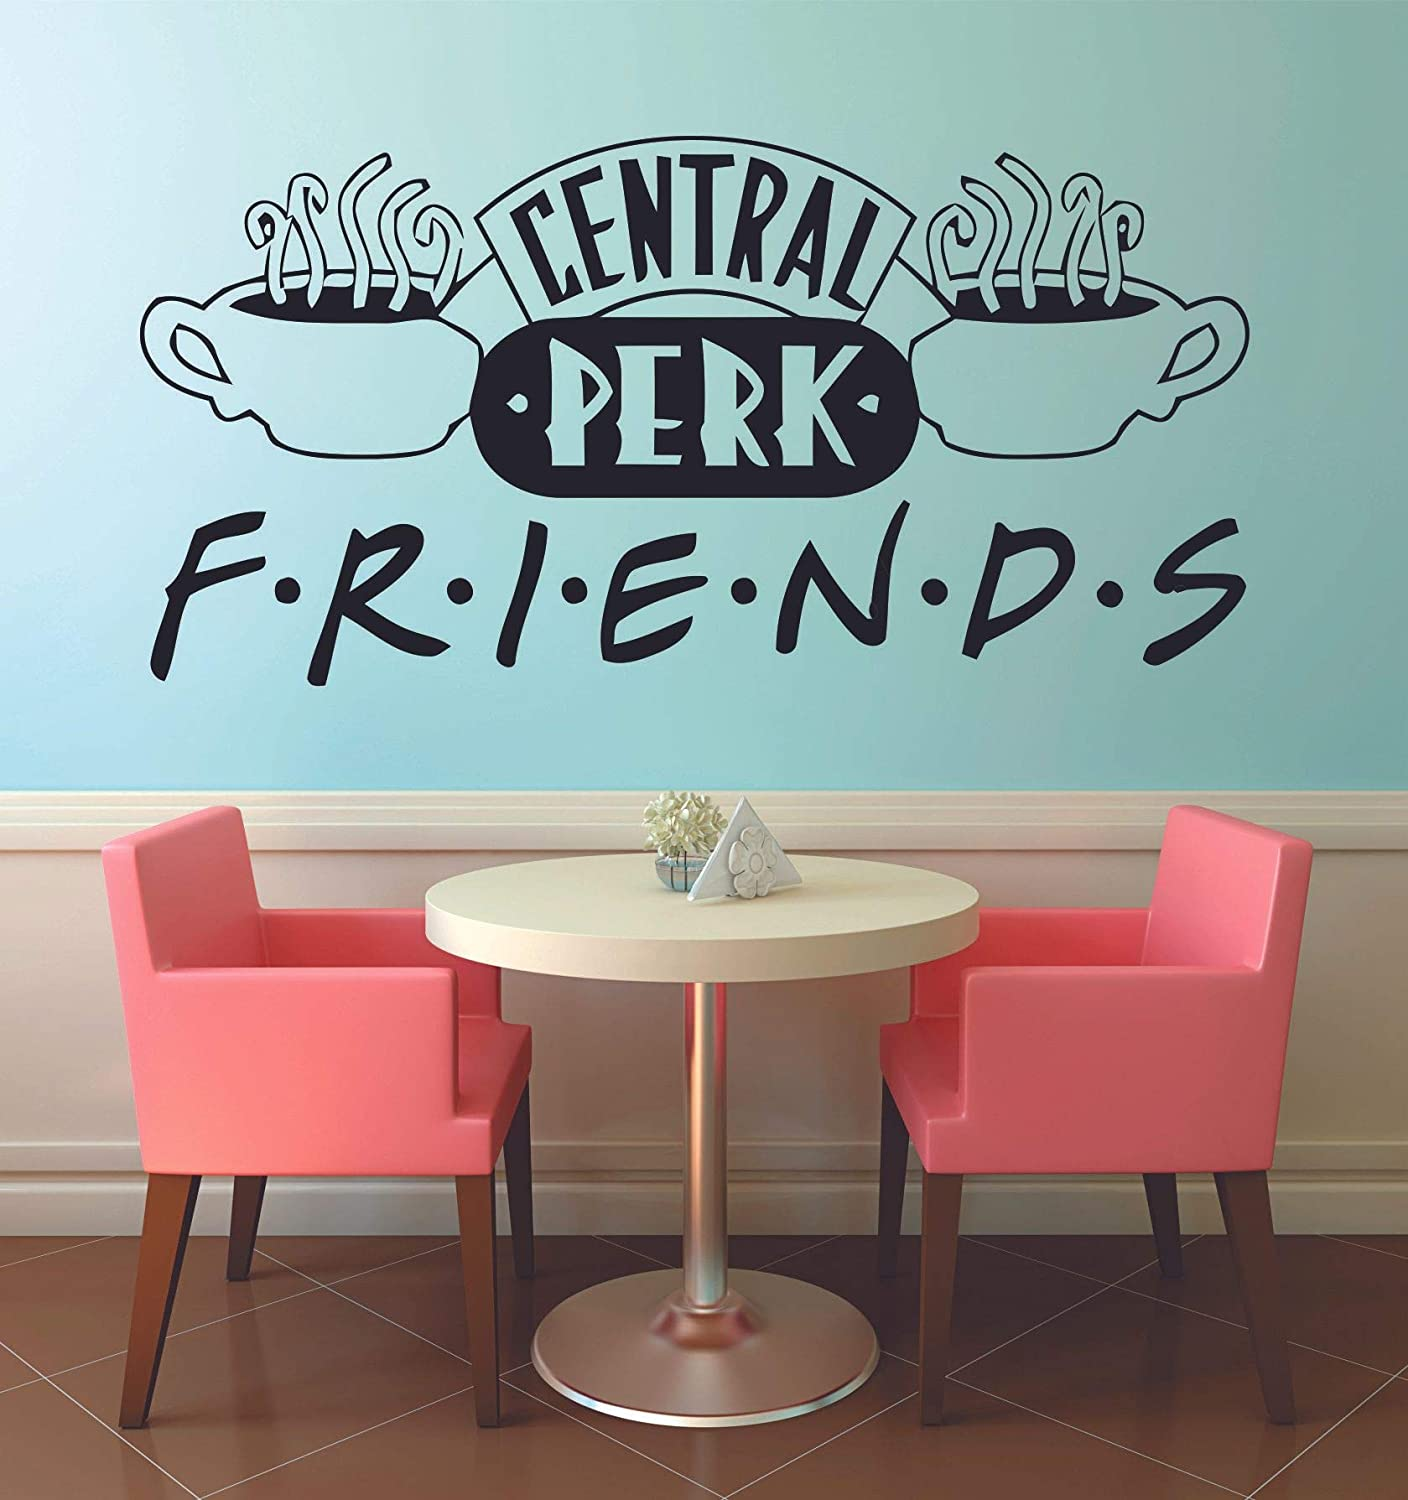 Central Perk Logo FRIENDS TV Show Series Quote Television Wall Stickers Decor Design for Boys/Girls Entertainment Bedroom Fans Rooms Home Art Murals Decals Wall Art Vinyl Decoration Size (18x20 inch)